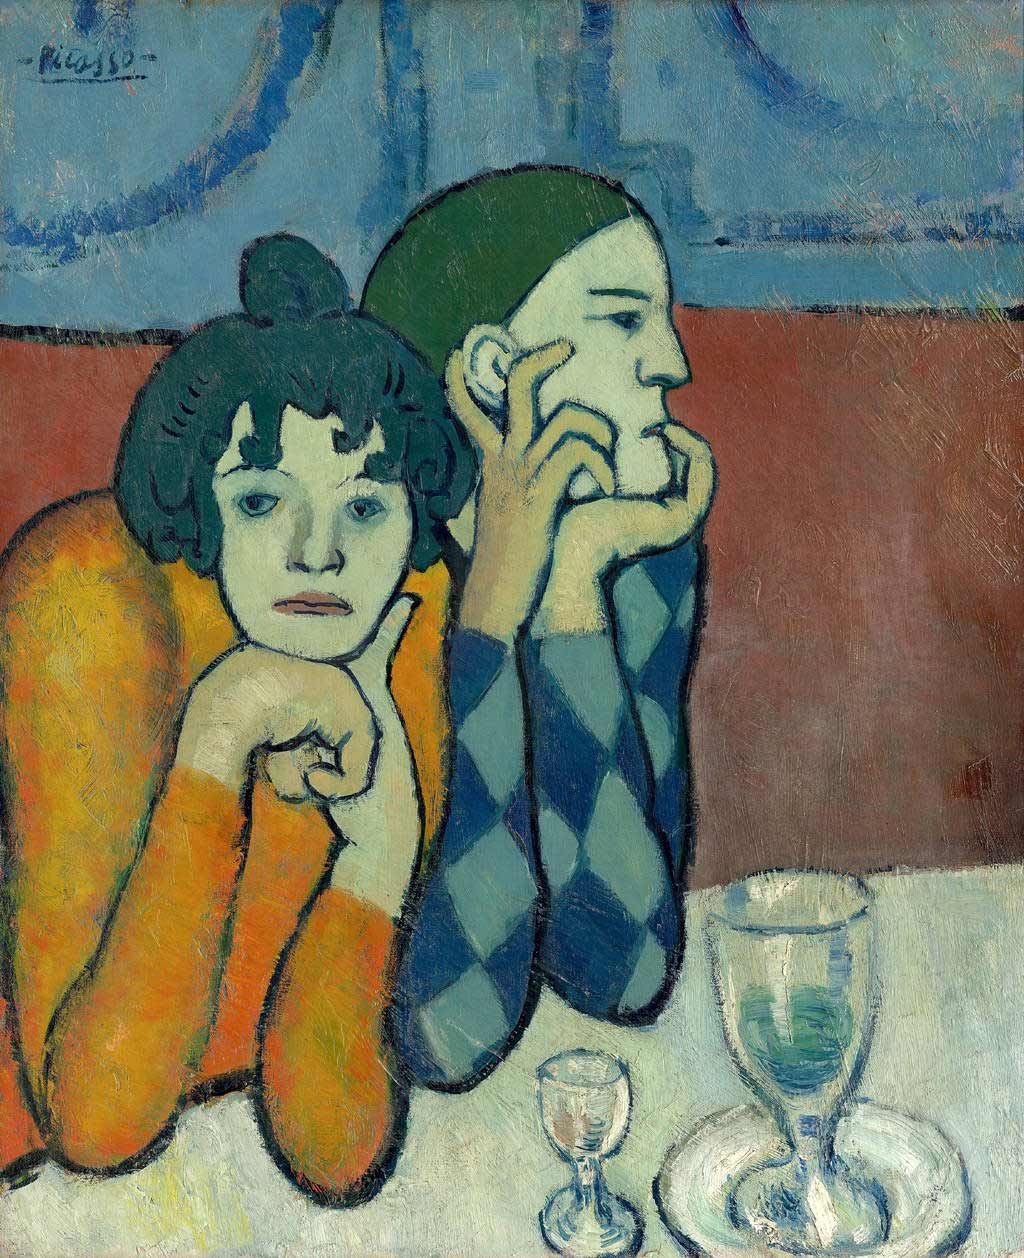 Becoming Picasso, a Londra per scoprire le origini del mito